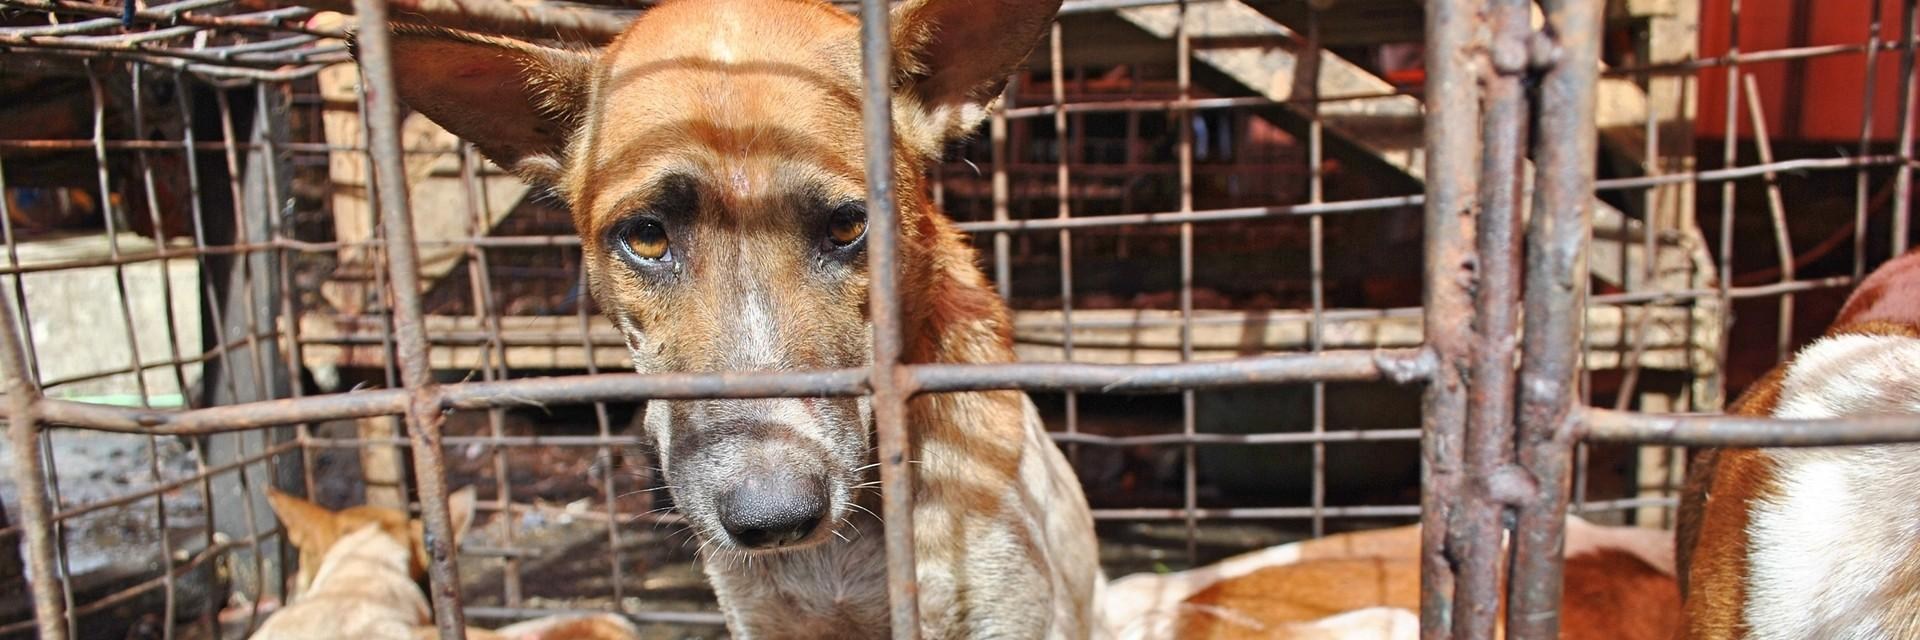 Dog in a cage in Indonesia